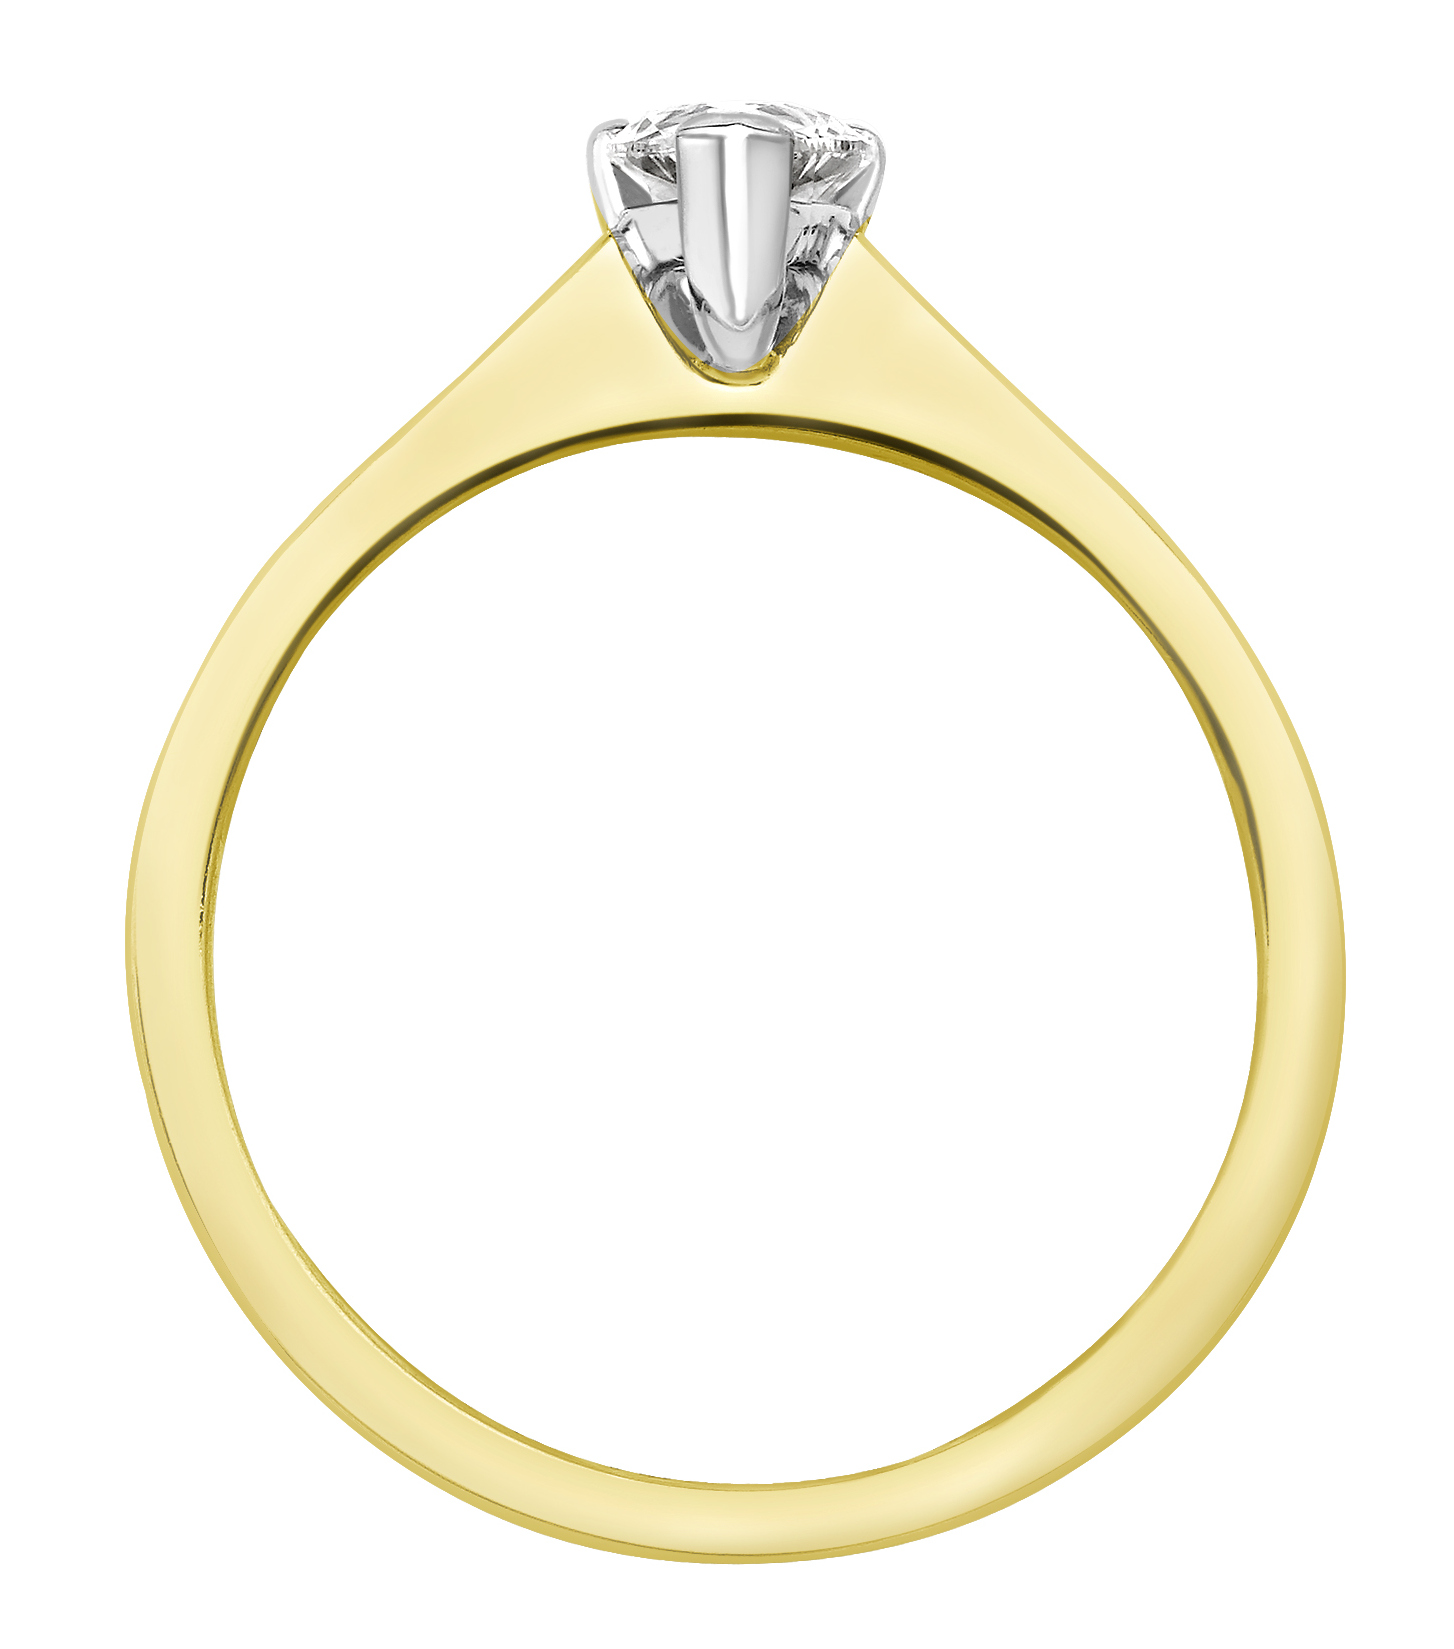 Pear Shape Yellow Gold Ring with Channel Set Shoulders CRC750YG Image 2